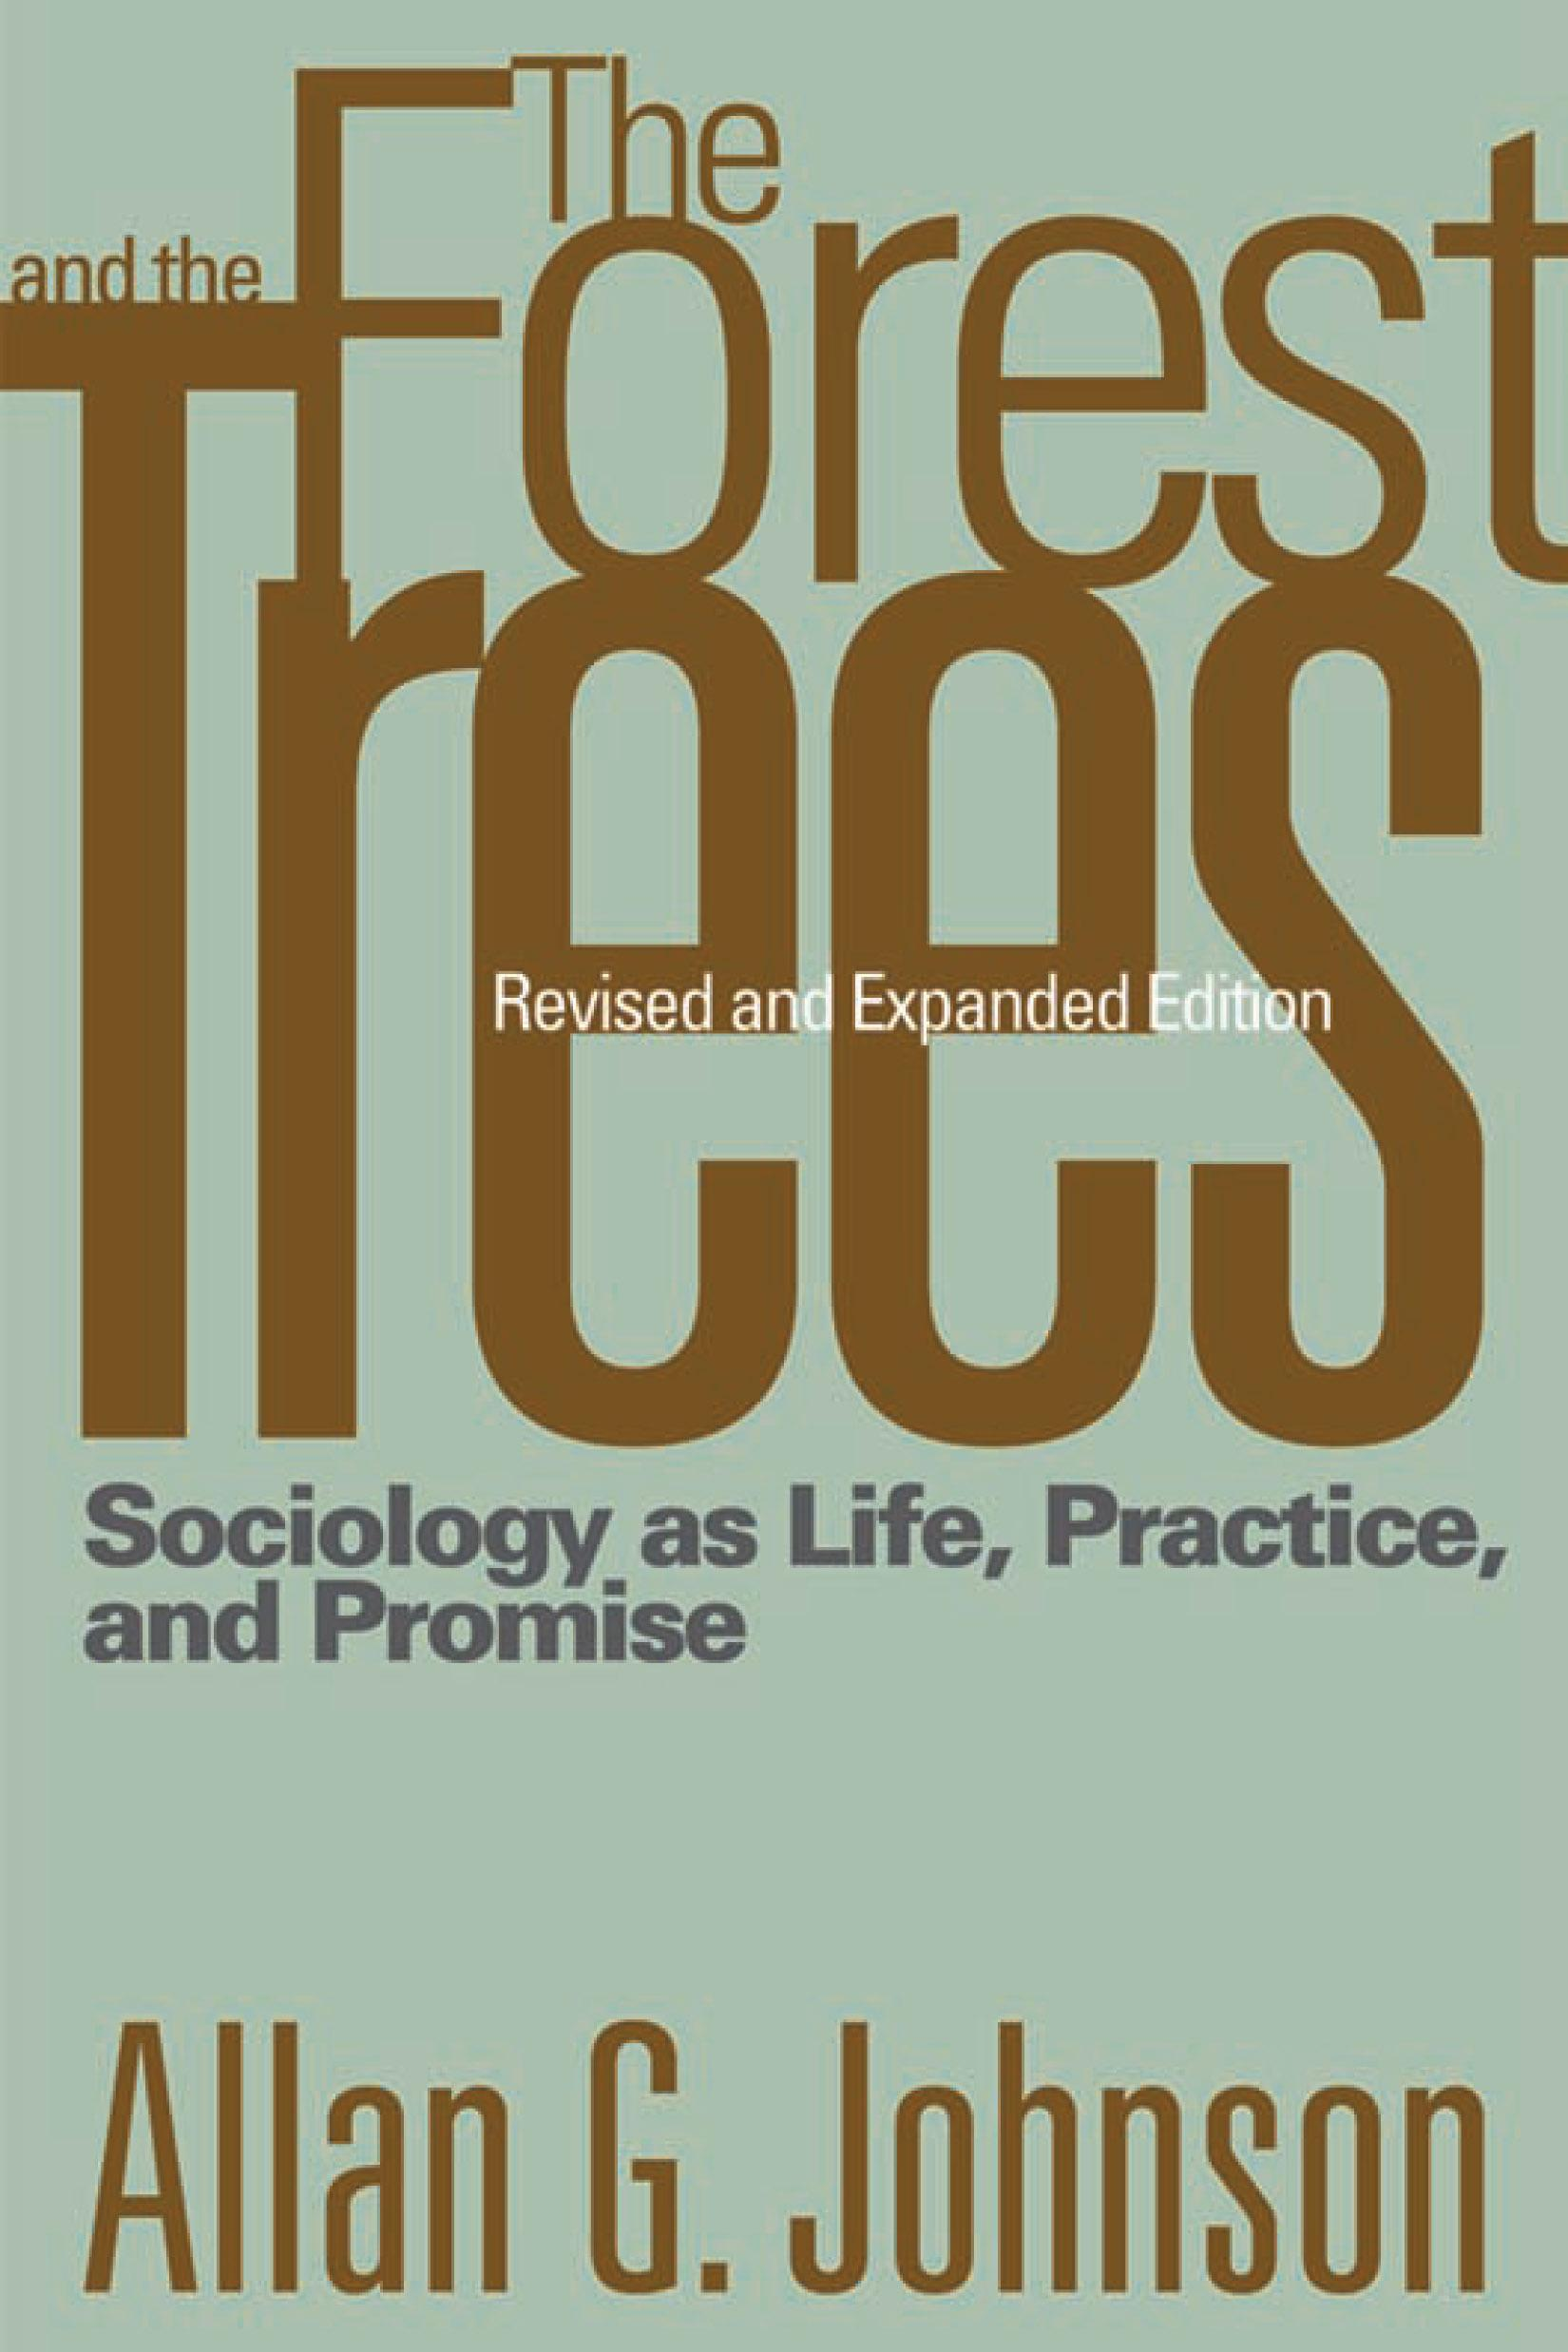 Forest and the Trees, The: Sociology as Life, Practice, and Promise EB9781592138777